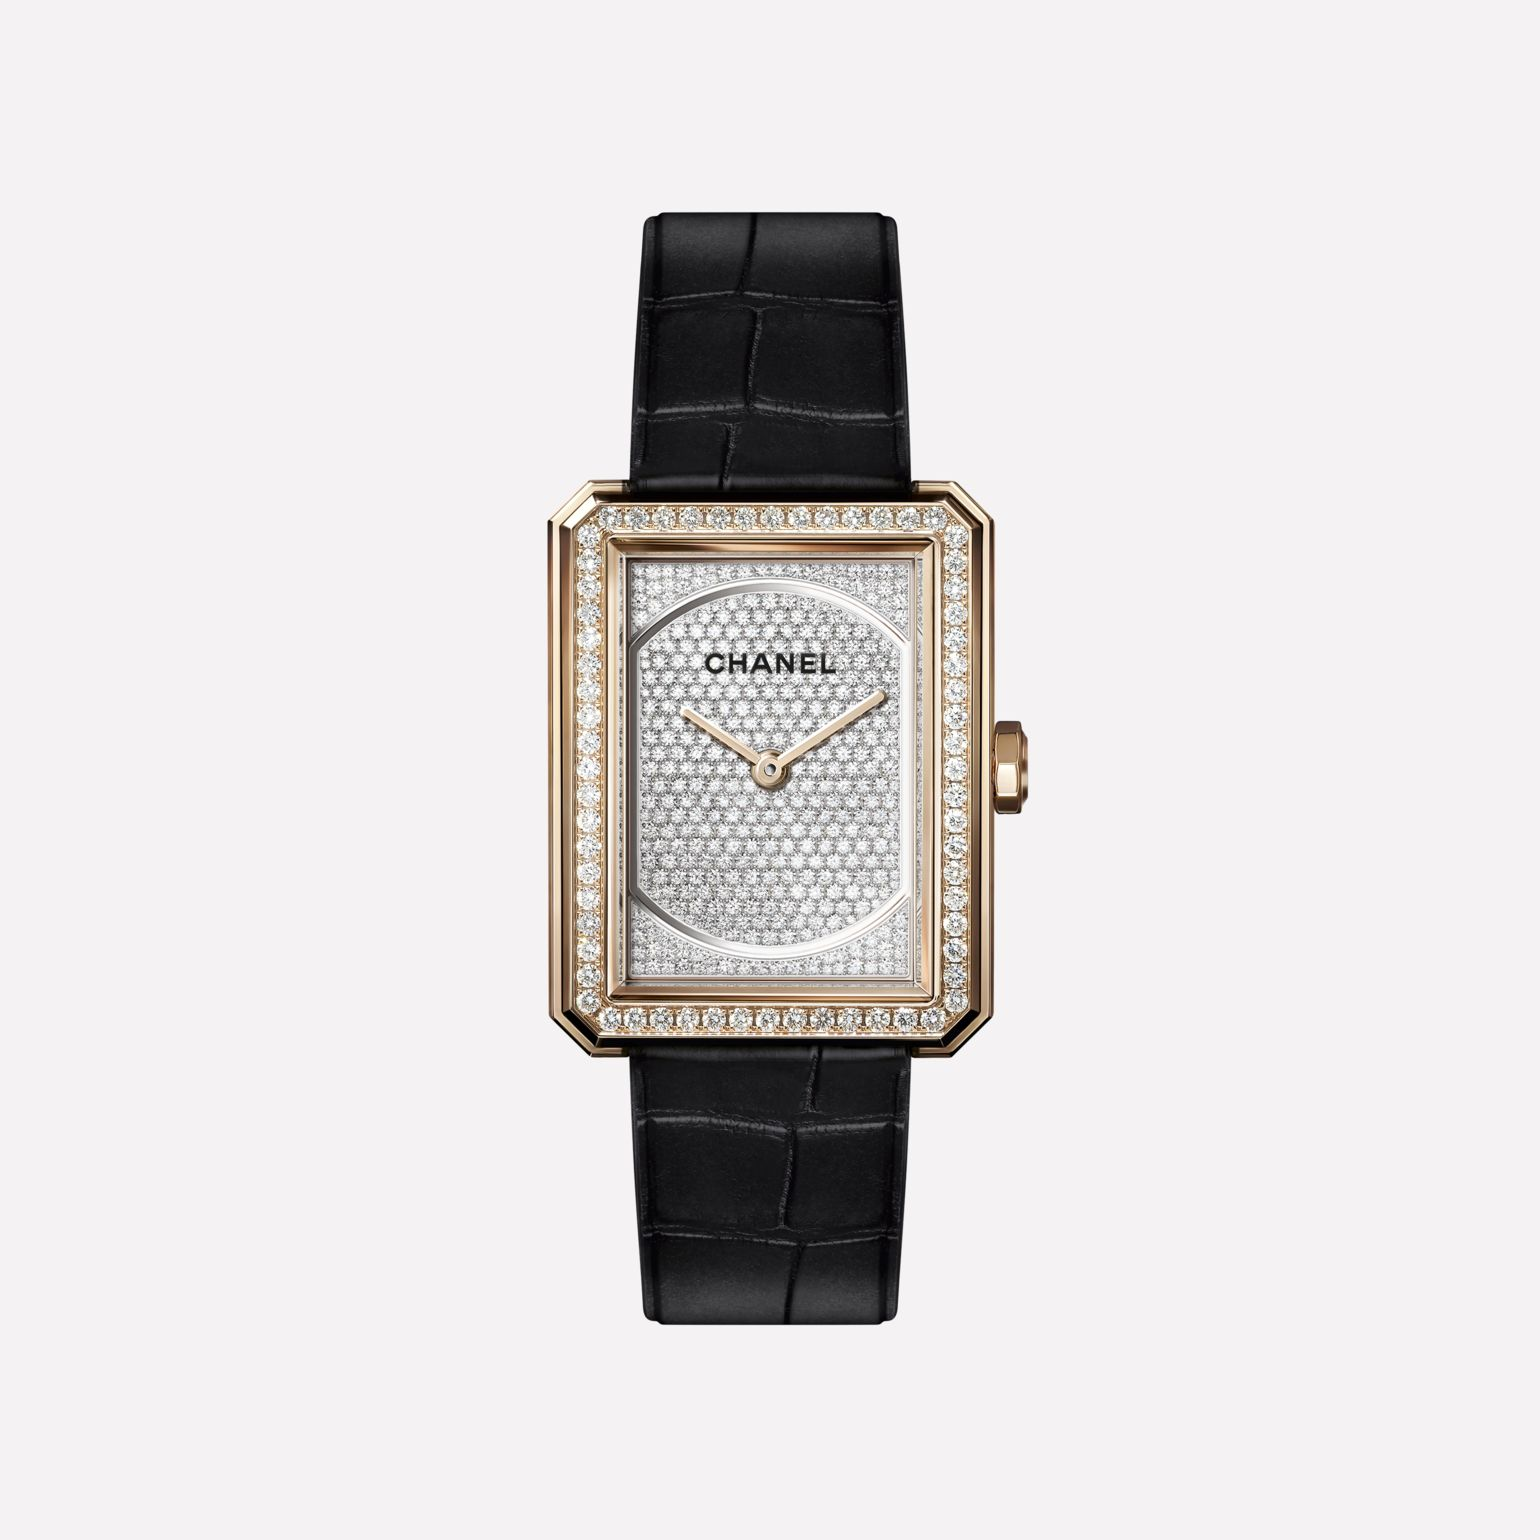 PREMIÈRE∙BOY DE CHANEL Medium version, BEIGE GOLD and dial set with diamonds, alligator strap